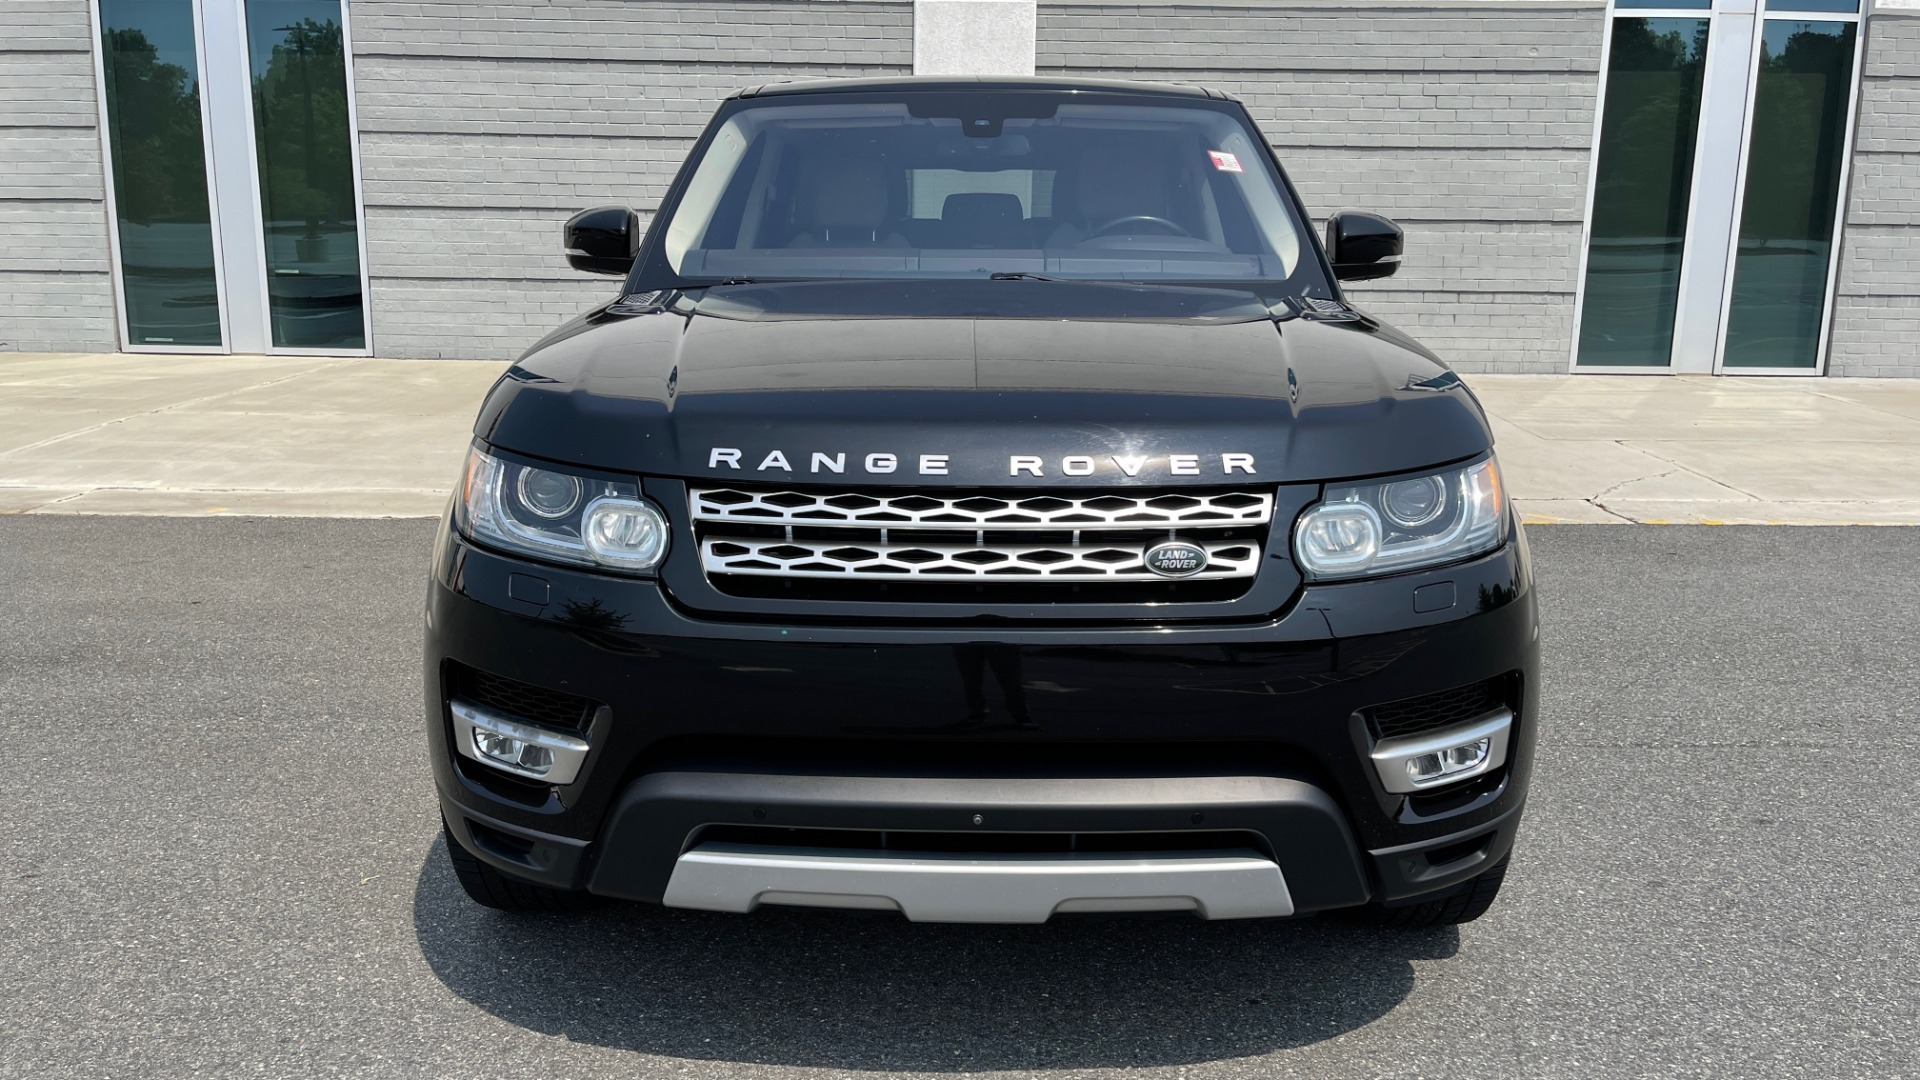 Used 2016 Land Rover RANGE ROVER SPORT V6 HSE / NAV / PANO-ROOF / MERIDIAN / CONSOLE COOLER / CAMERAS for sale $40,995 at Formula Imports in Charlotte NC 28227 12